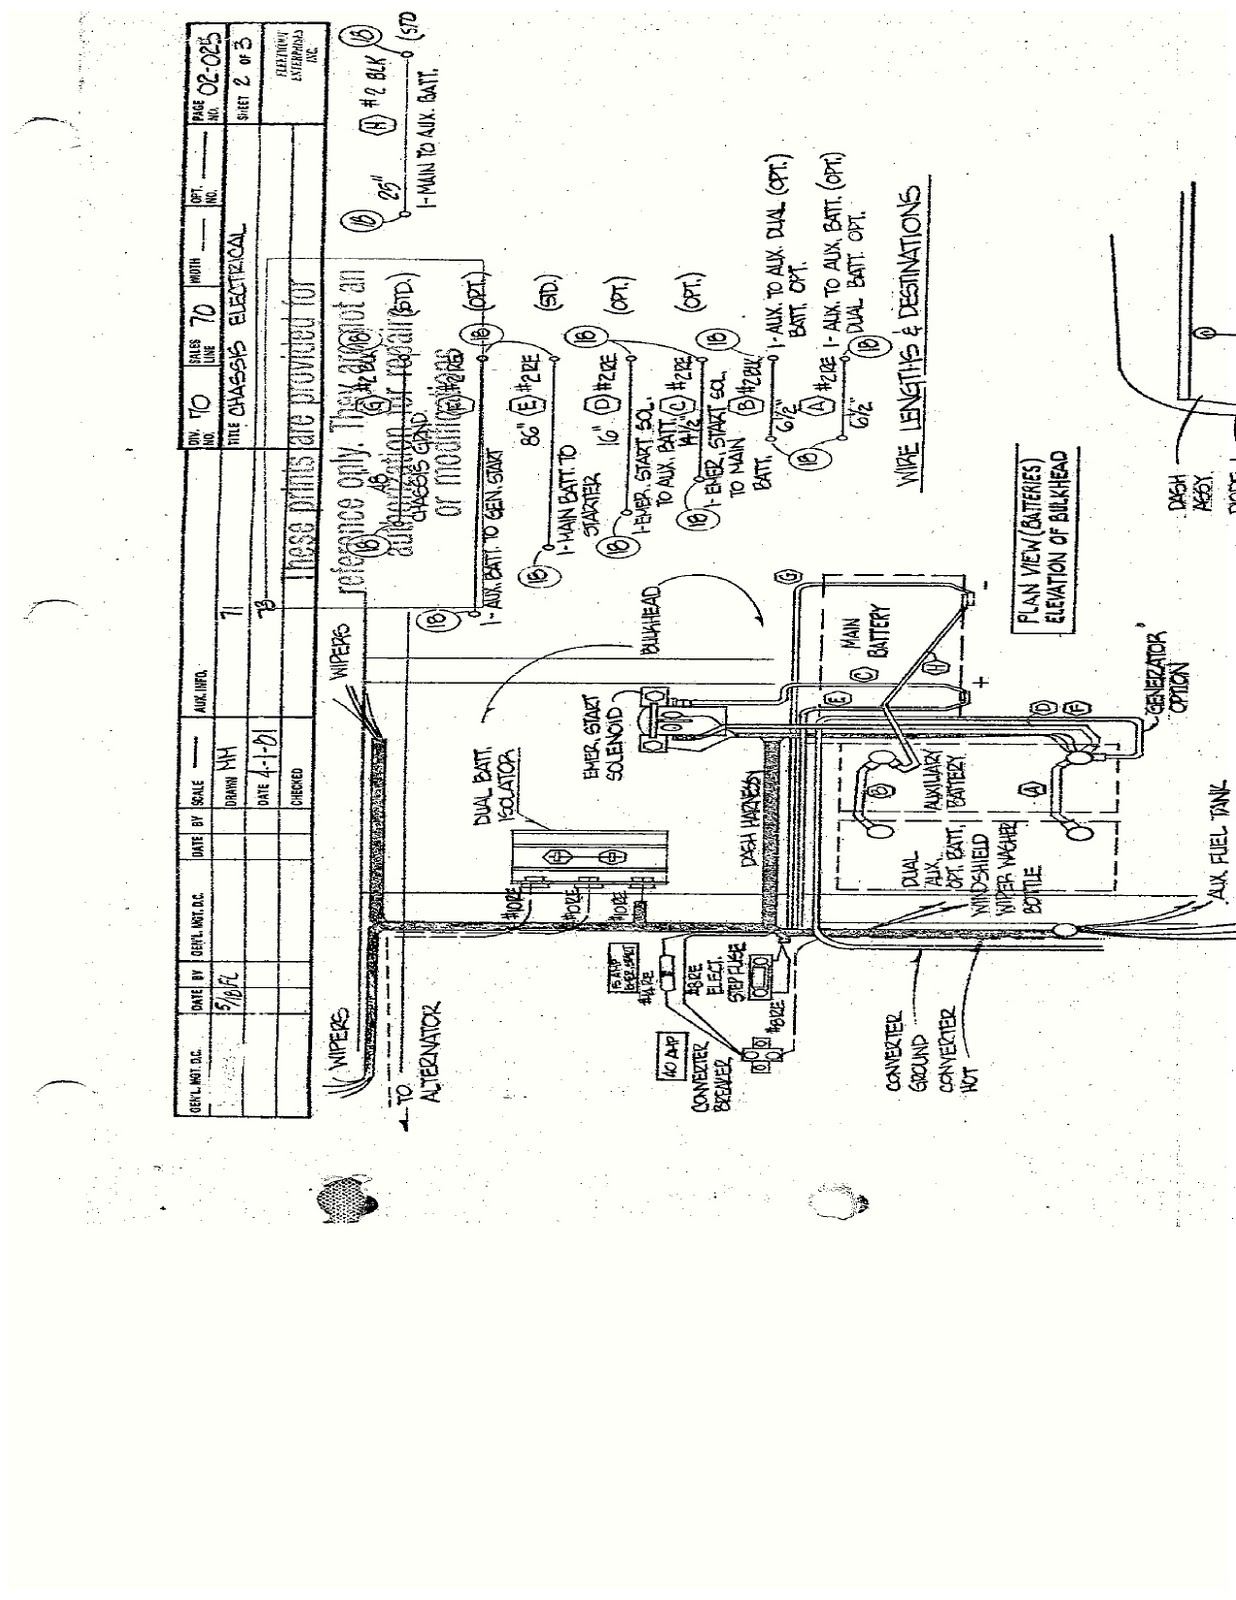 diagram] wiring diagram for 1985 fleetwood southwind full version hd  quality fleetwood southwind - xxdatabase.k-danse.fr  database diagramming tool - k-danse.fr